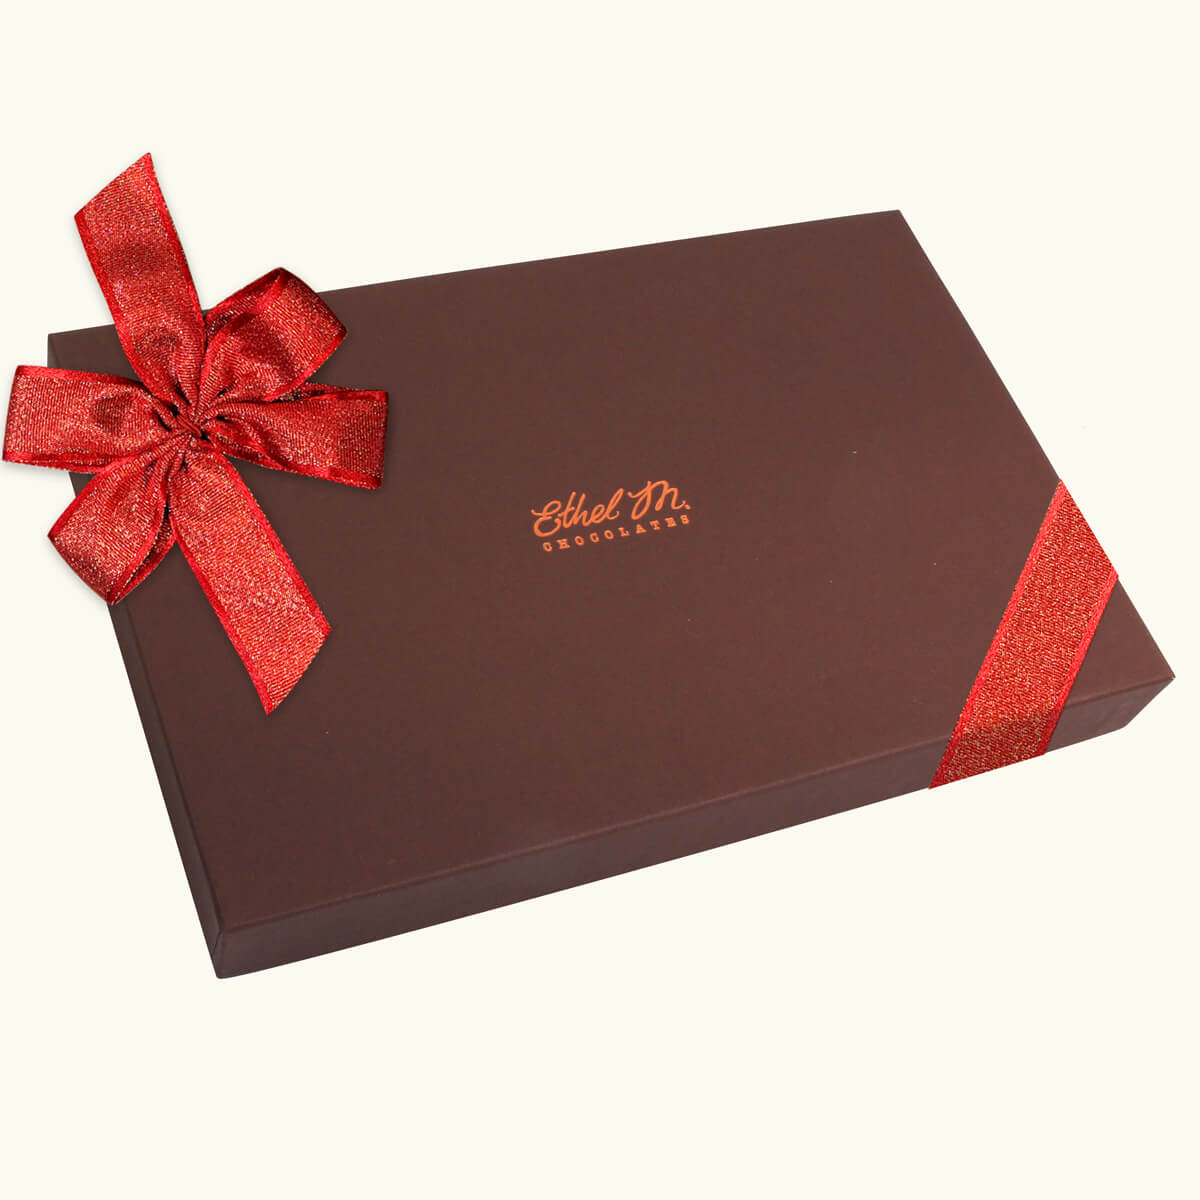 Design Your Own RED RIBBON Chocolate Assortment, 20-40 Total Pieces